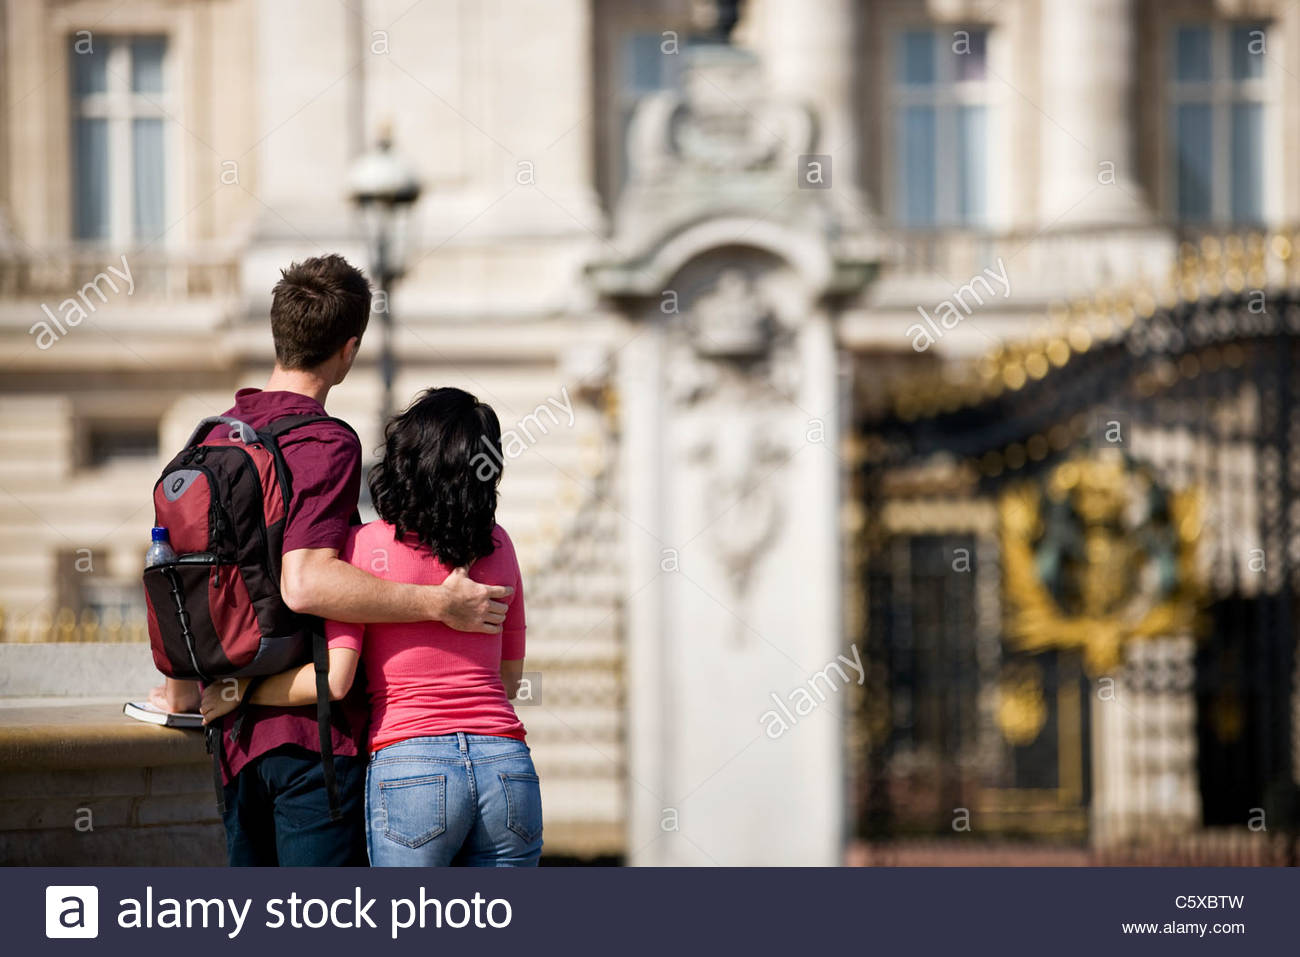 A young couple standing in front of Buckingham Palace - Stock Image